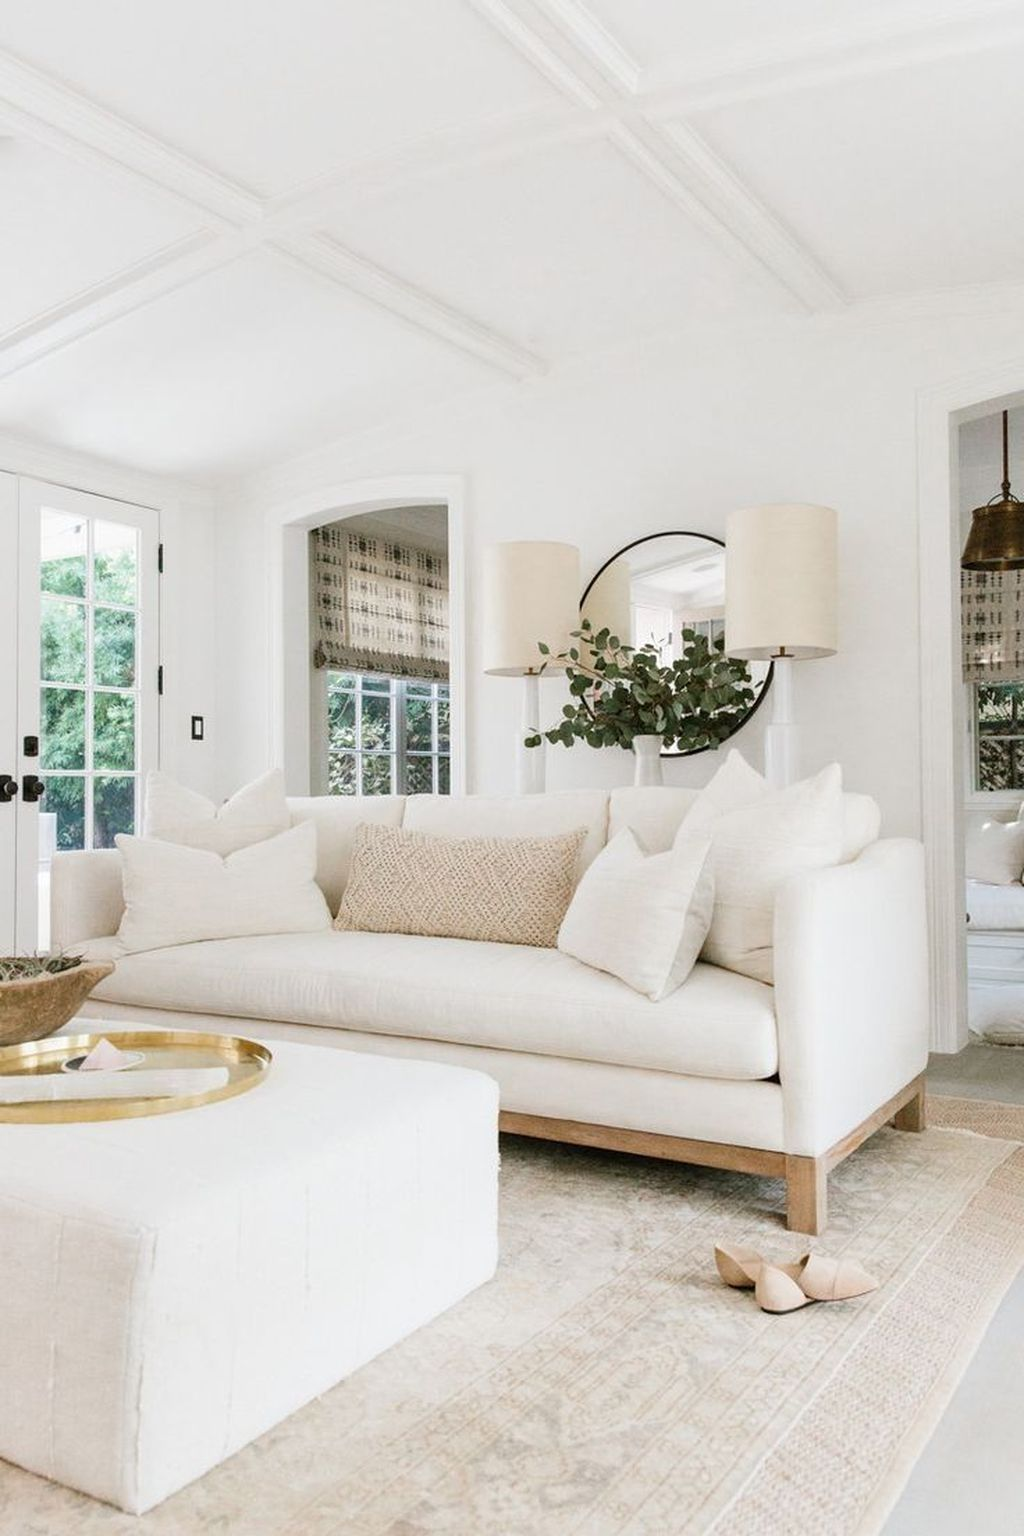 House decoration trends come and go but neutral tones remain the safest option for most